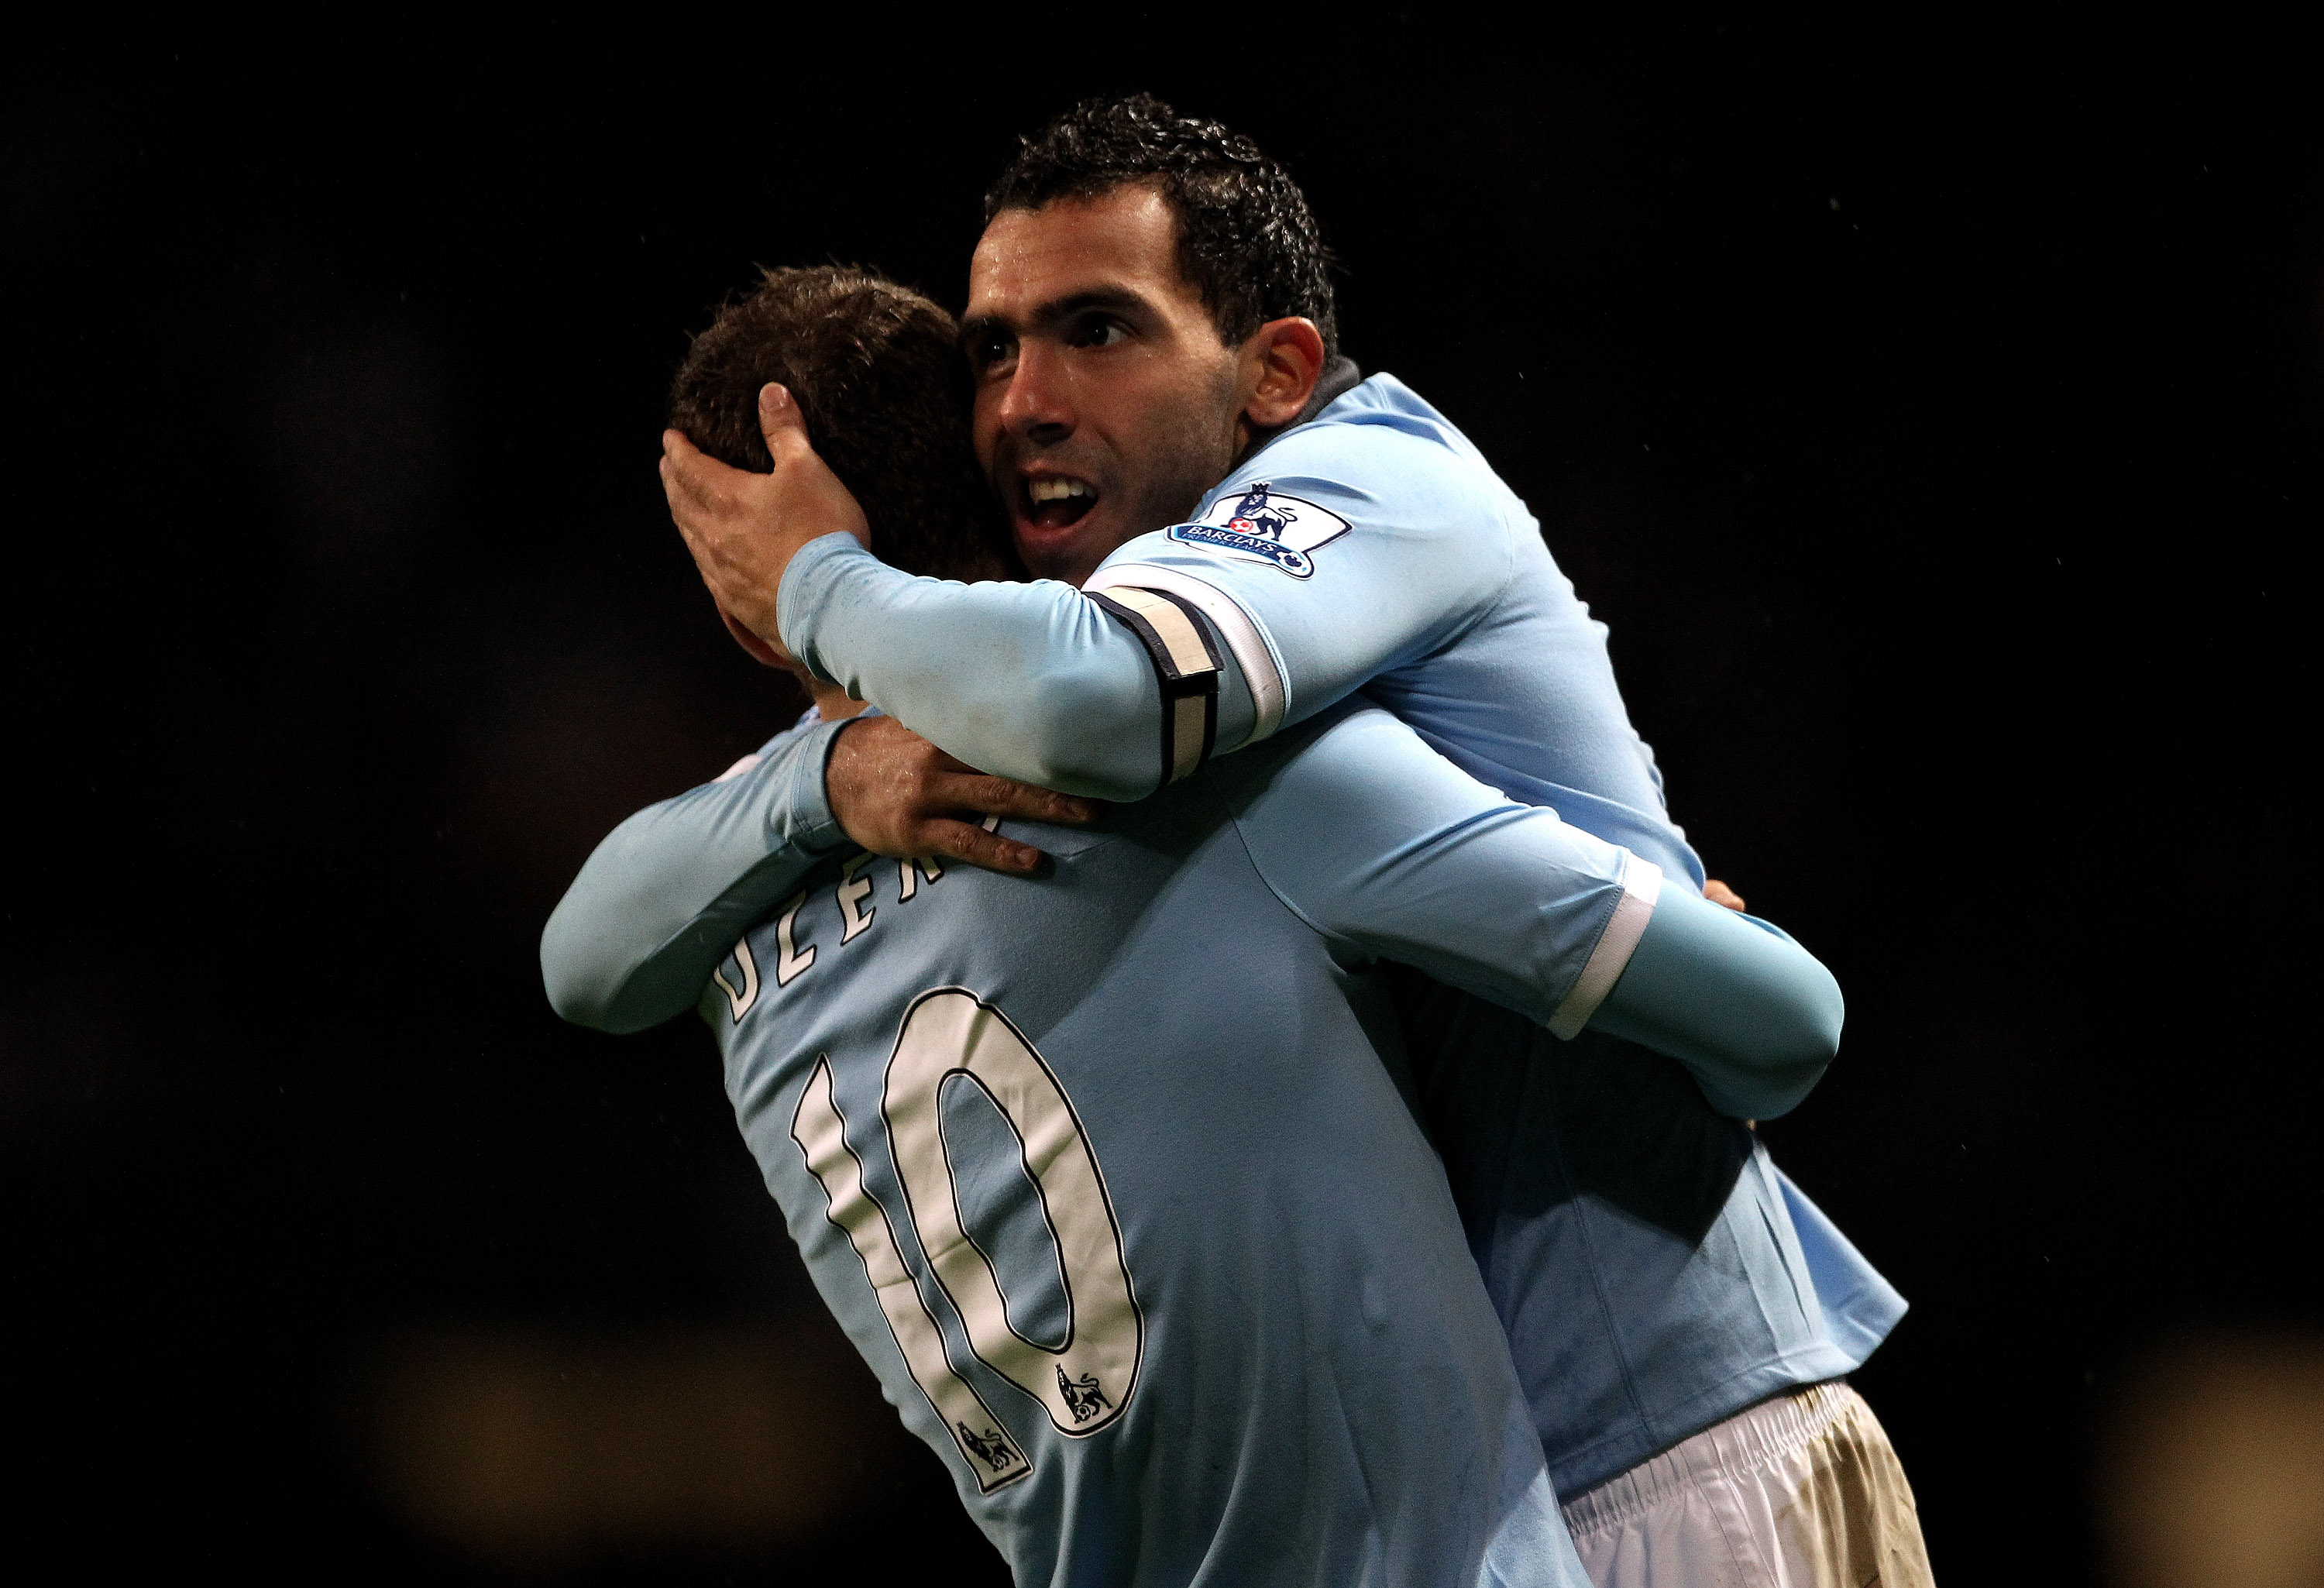 MANCHESTER, ENGLAND - JANUARY 15:  Carlos Tevez of Manchester City celebrates scoring his team's fourth goal with team mate Edin Dzeko during the Barclays Premier League match between Manchester City and Wolverhampton Wanderers at the City of Manchester S